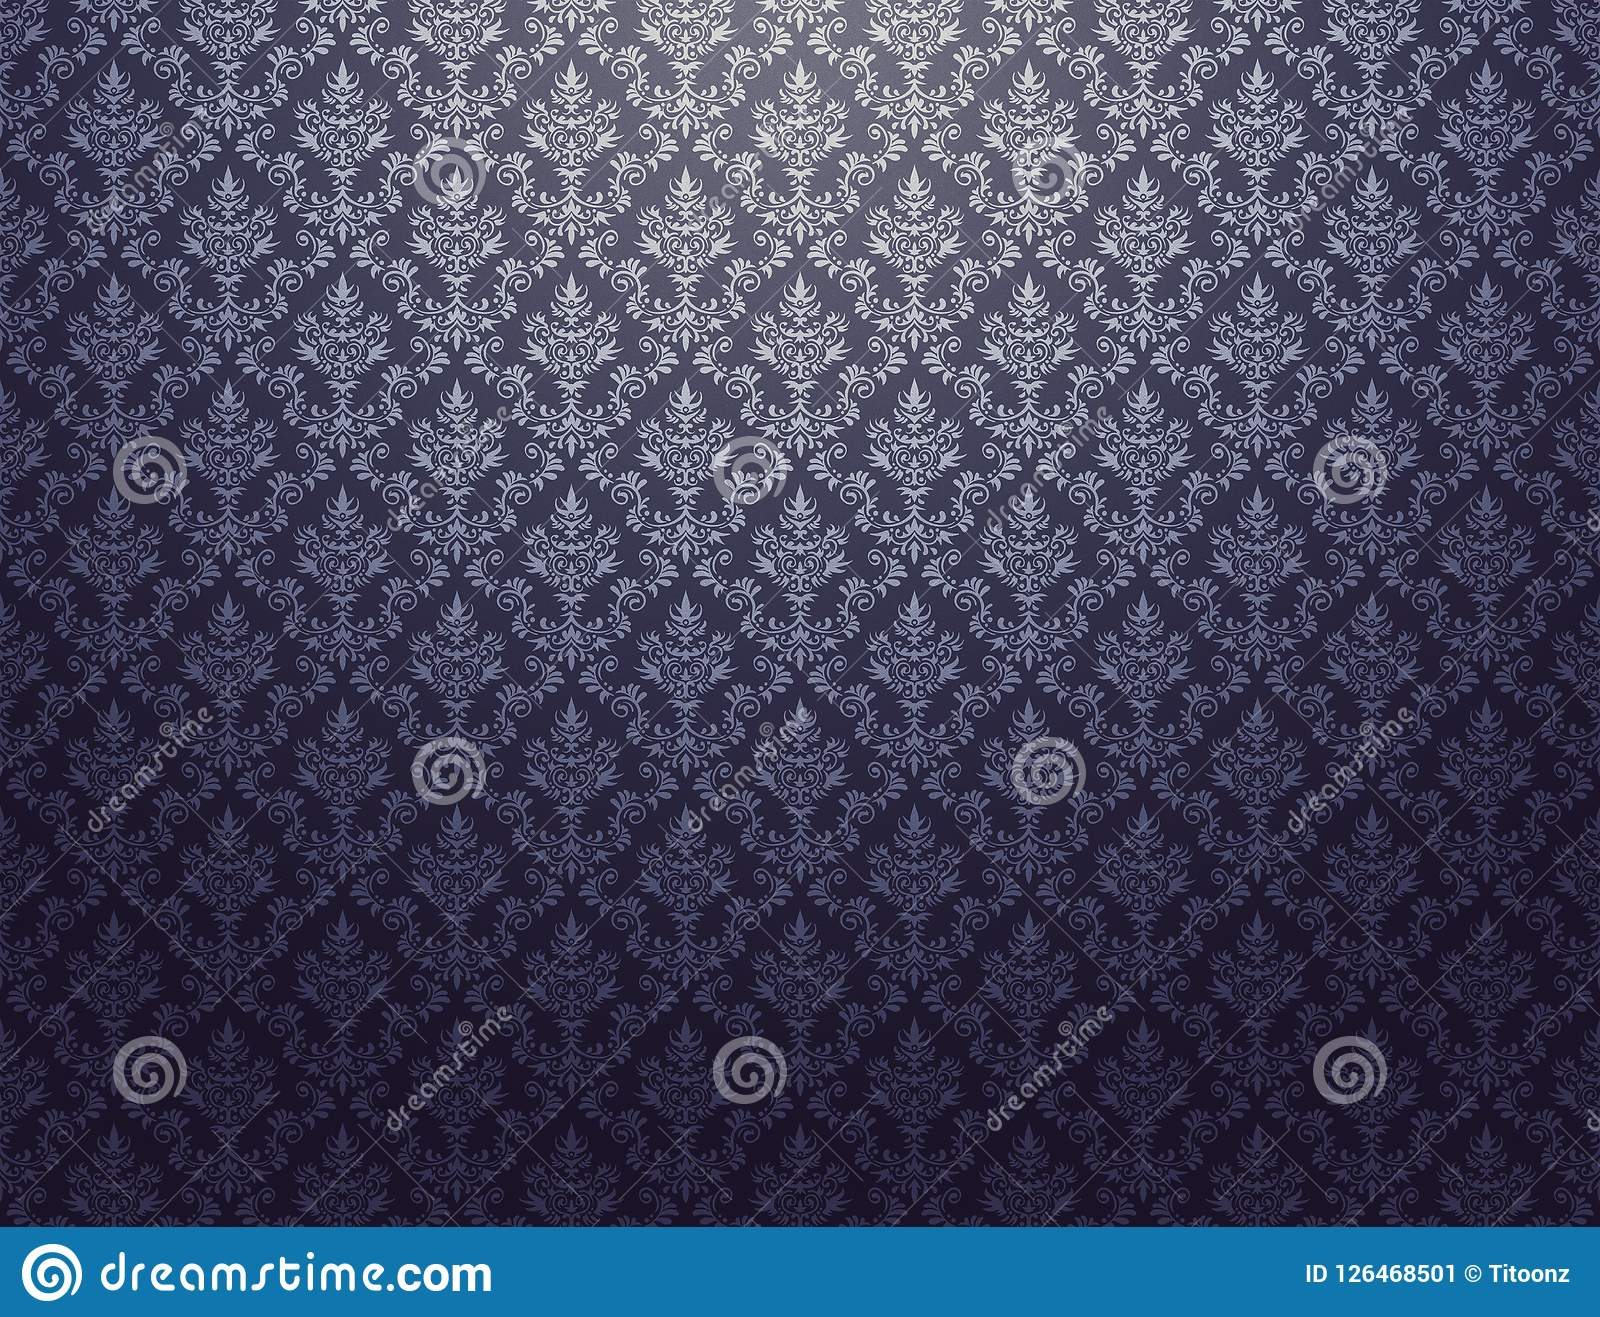 Black Wallpaper With Silver Damask Pattern Stock Illustration